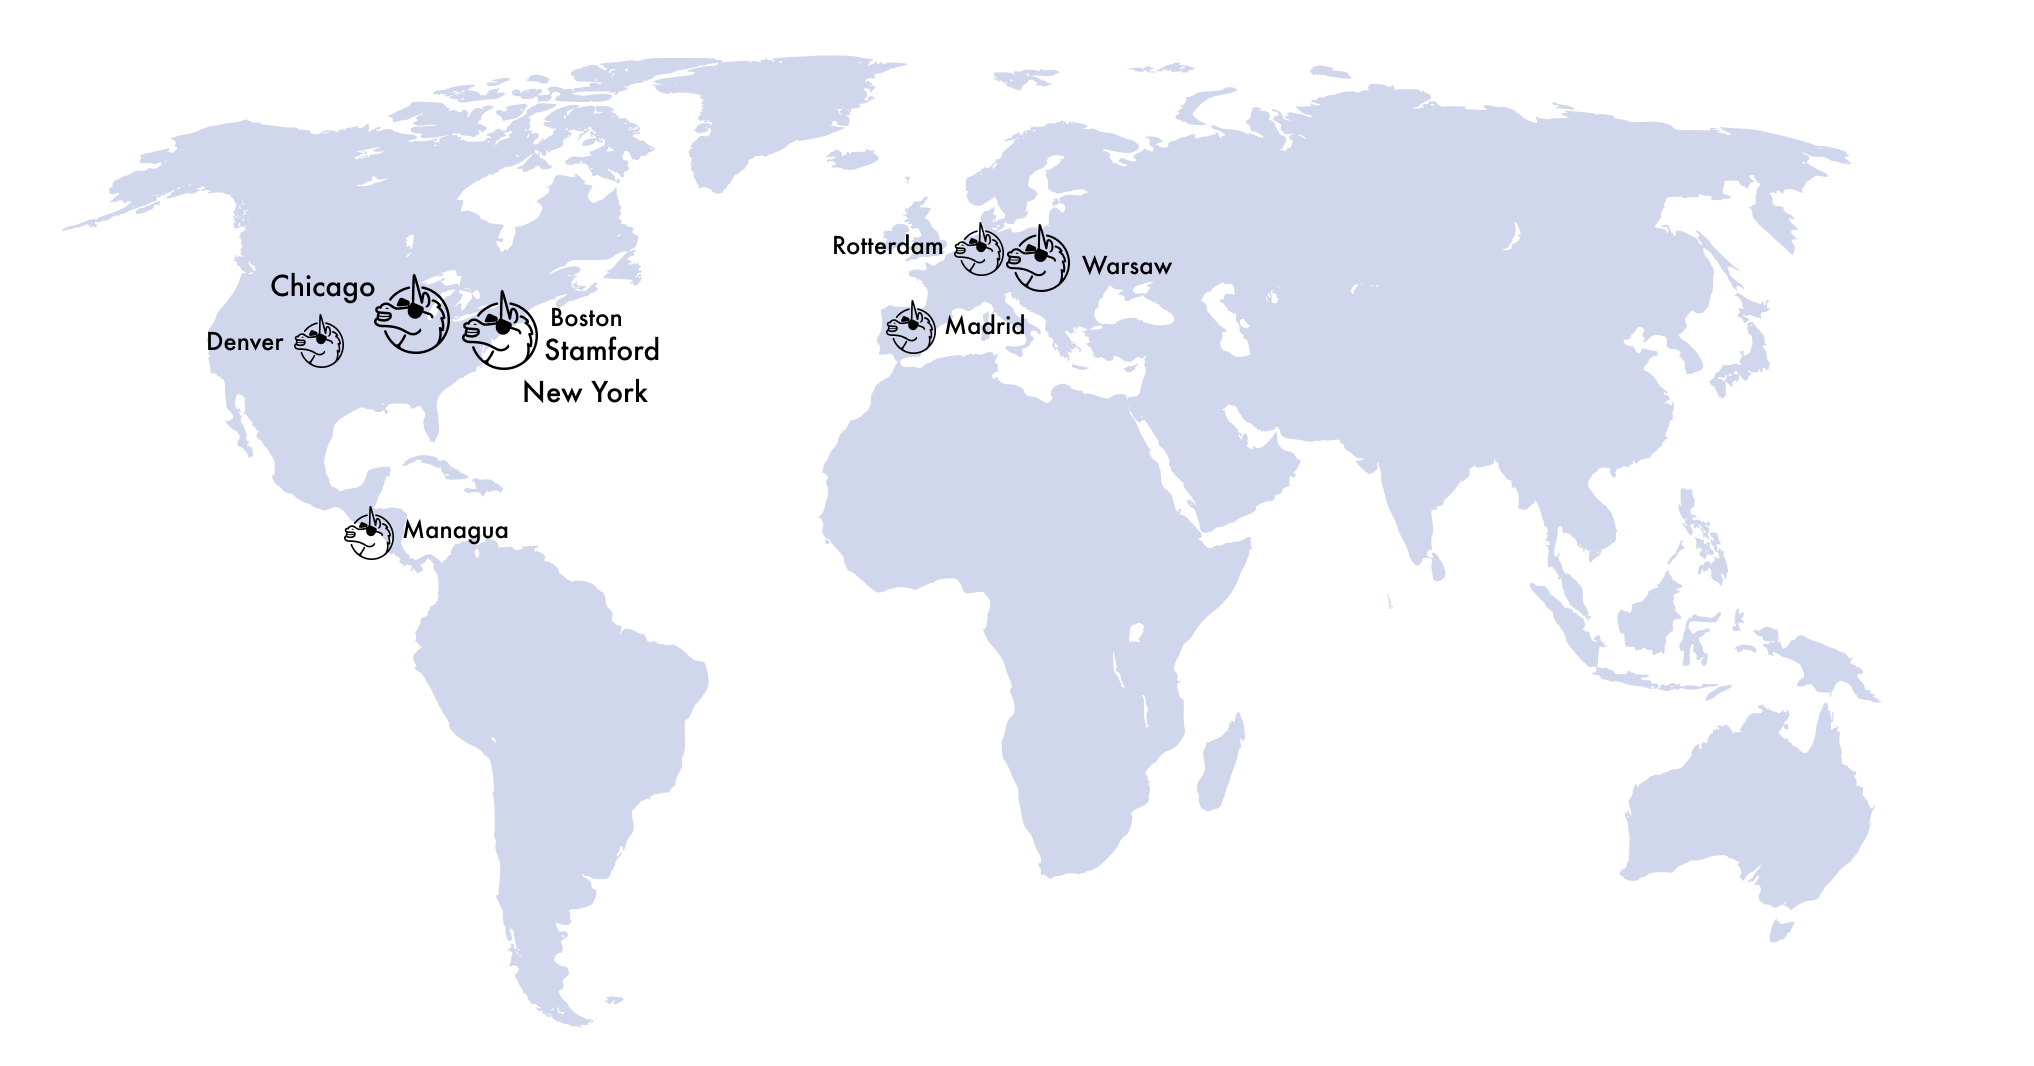 Map with VGV locations around the world: New York, Chicago, Stamford, and more